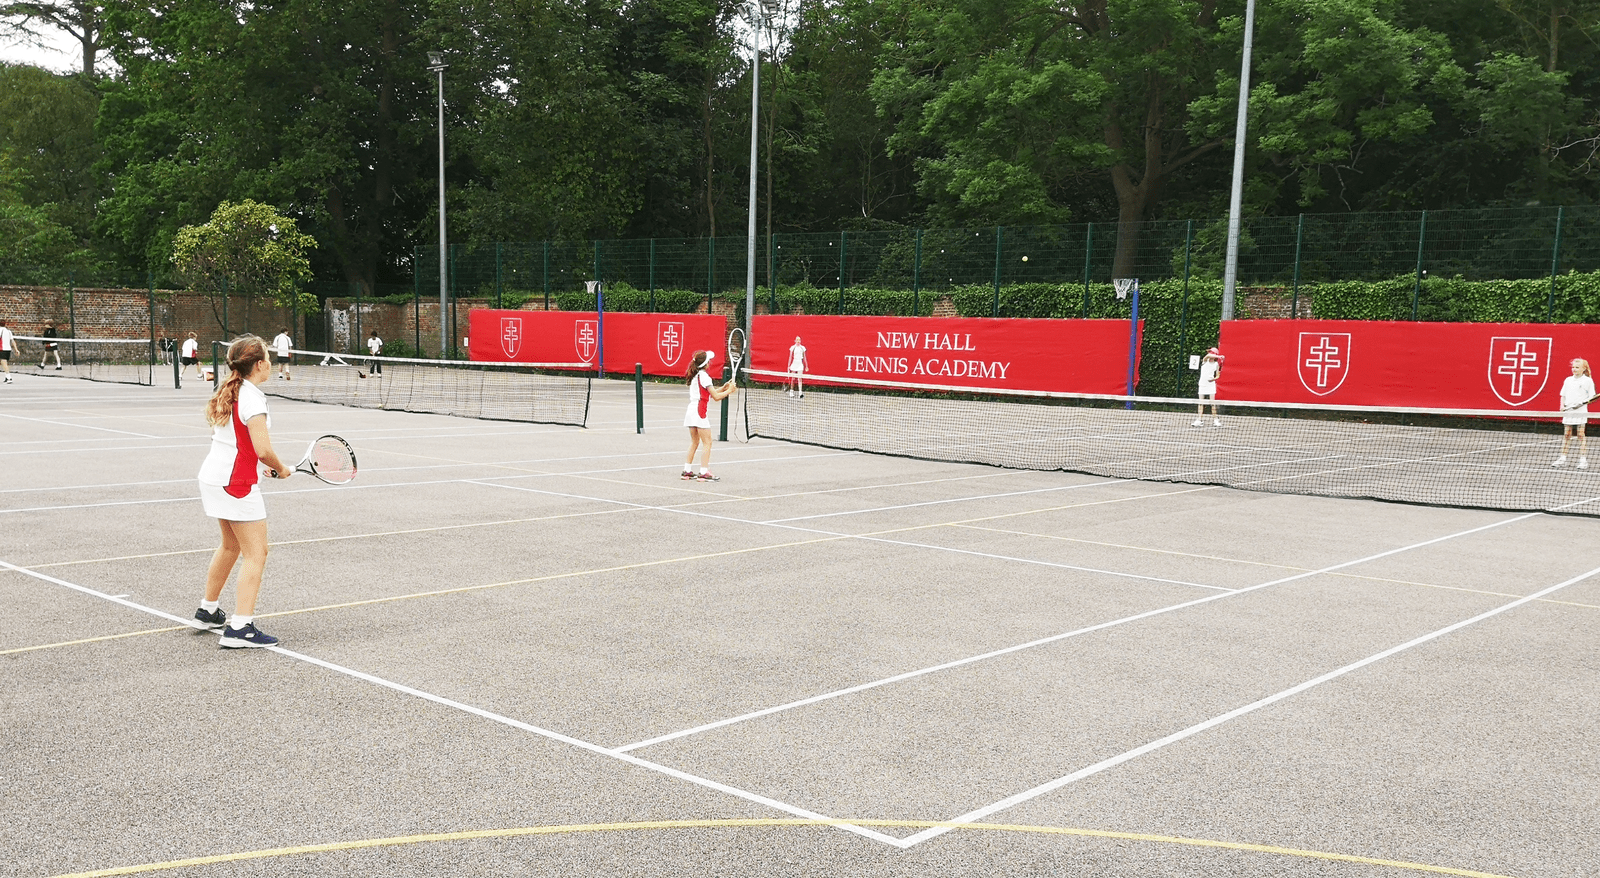 New Hall Academy tennis players on the newly branded courts